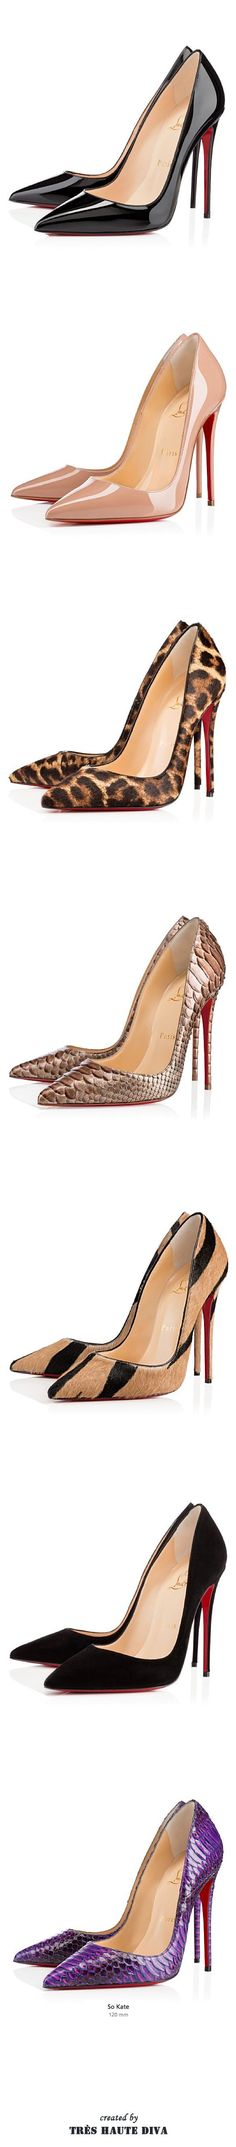 Christian Louboutin 'So Kate' Fall 2014 #leopard #louboutin #lovely